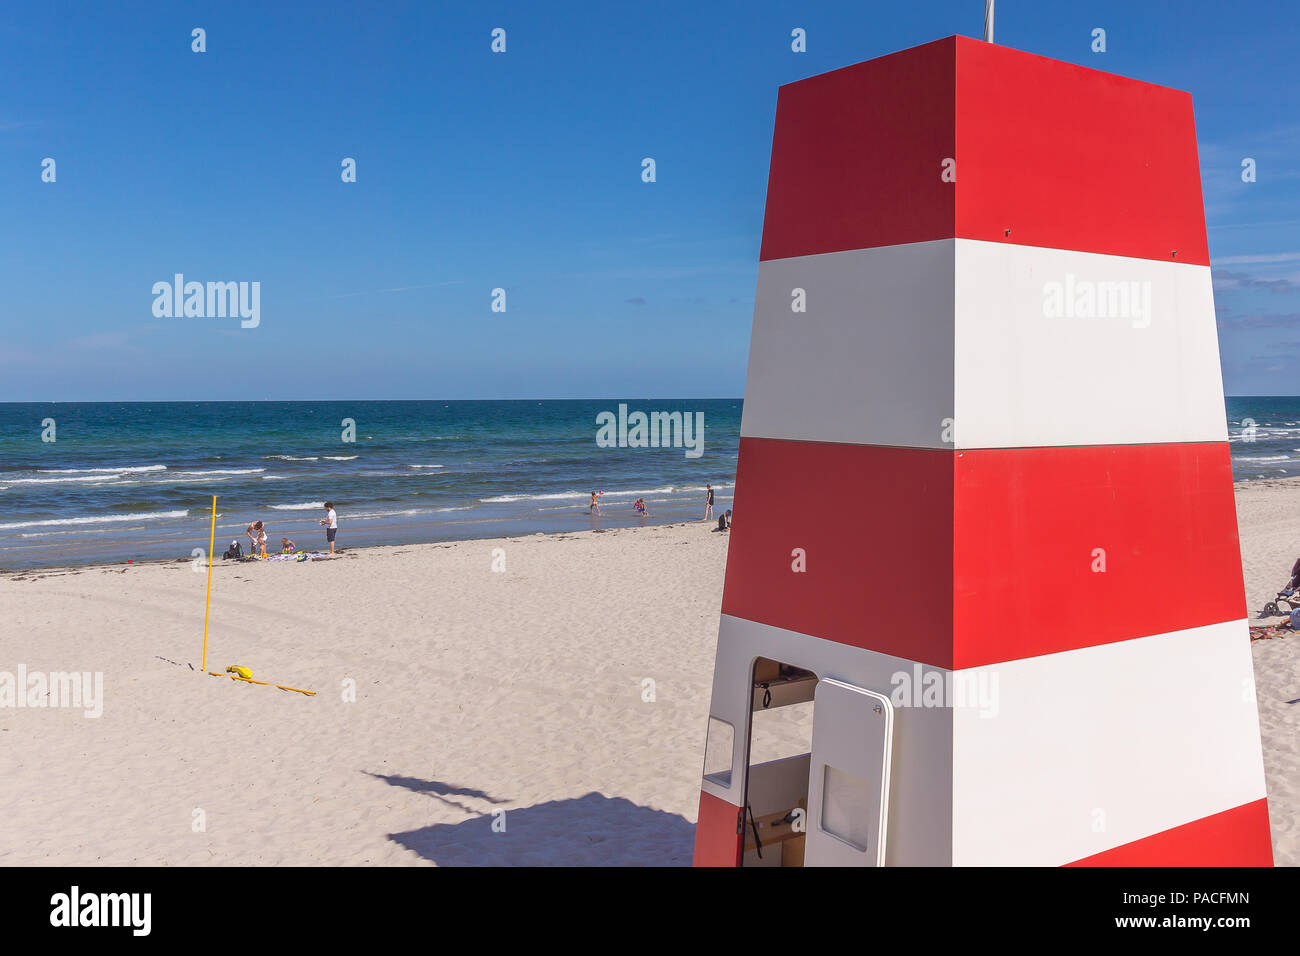 A red and white rescue tower with several stocks on the beach. Rorvig, Denmark, July 20, 2018 - Stock Image